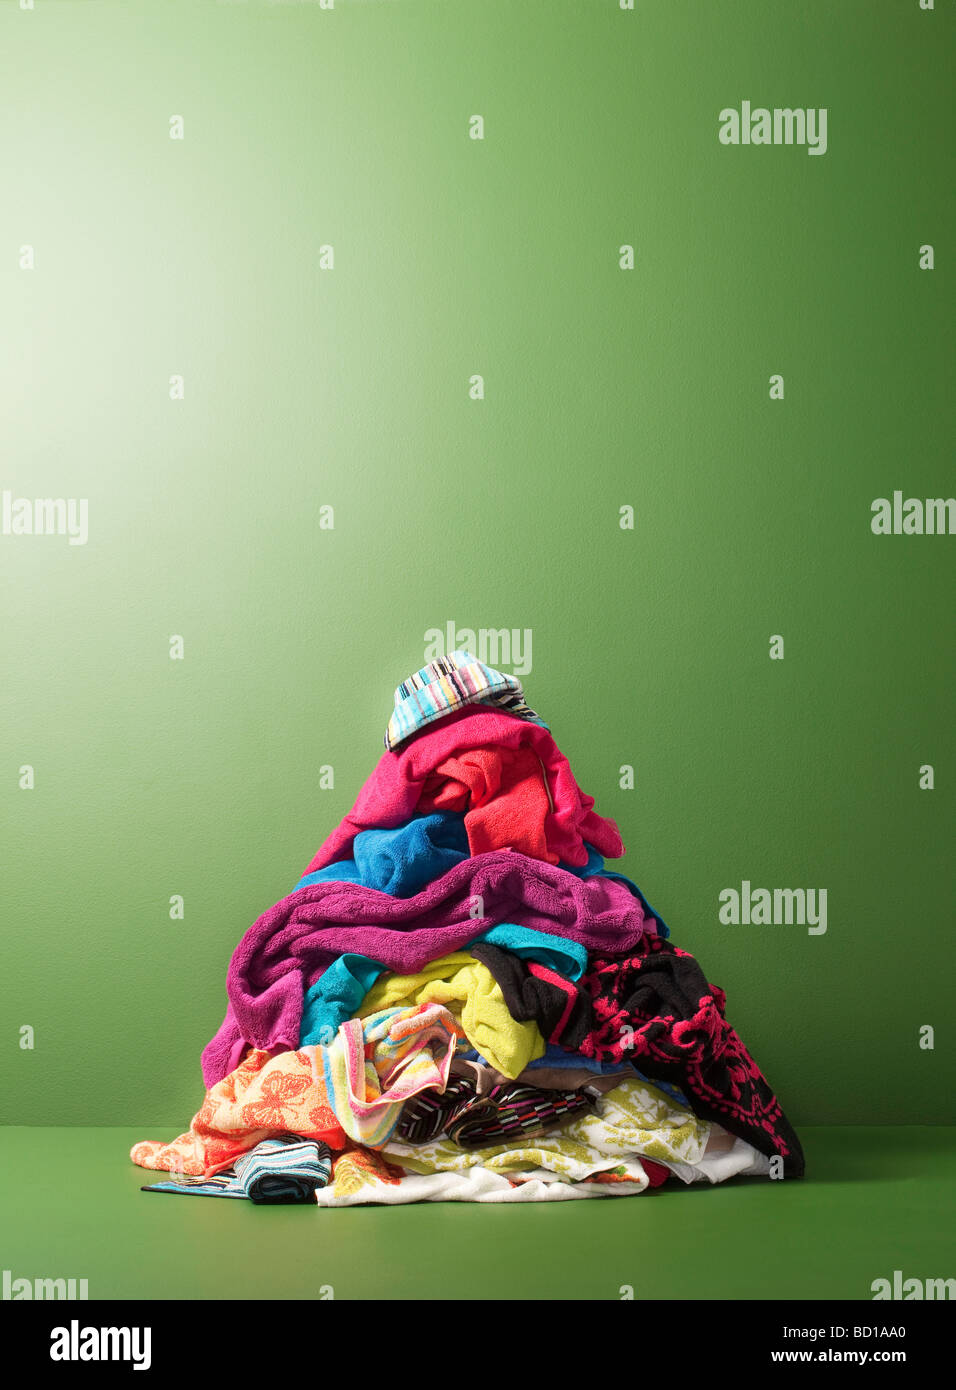 Pile of towels for laundry - Stock Image